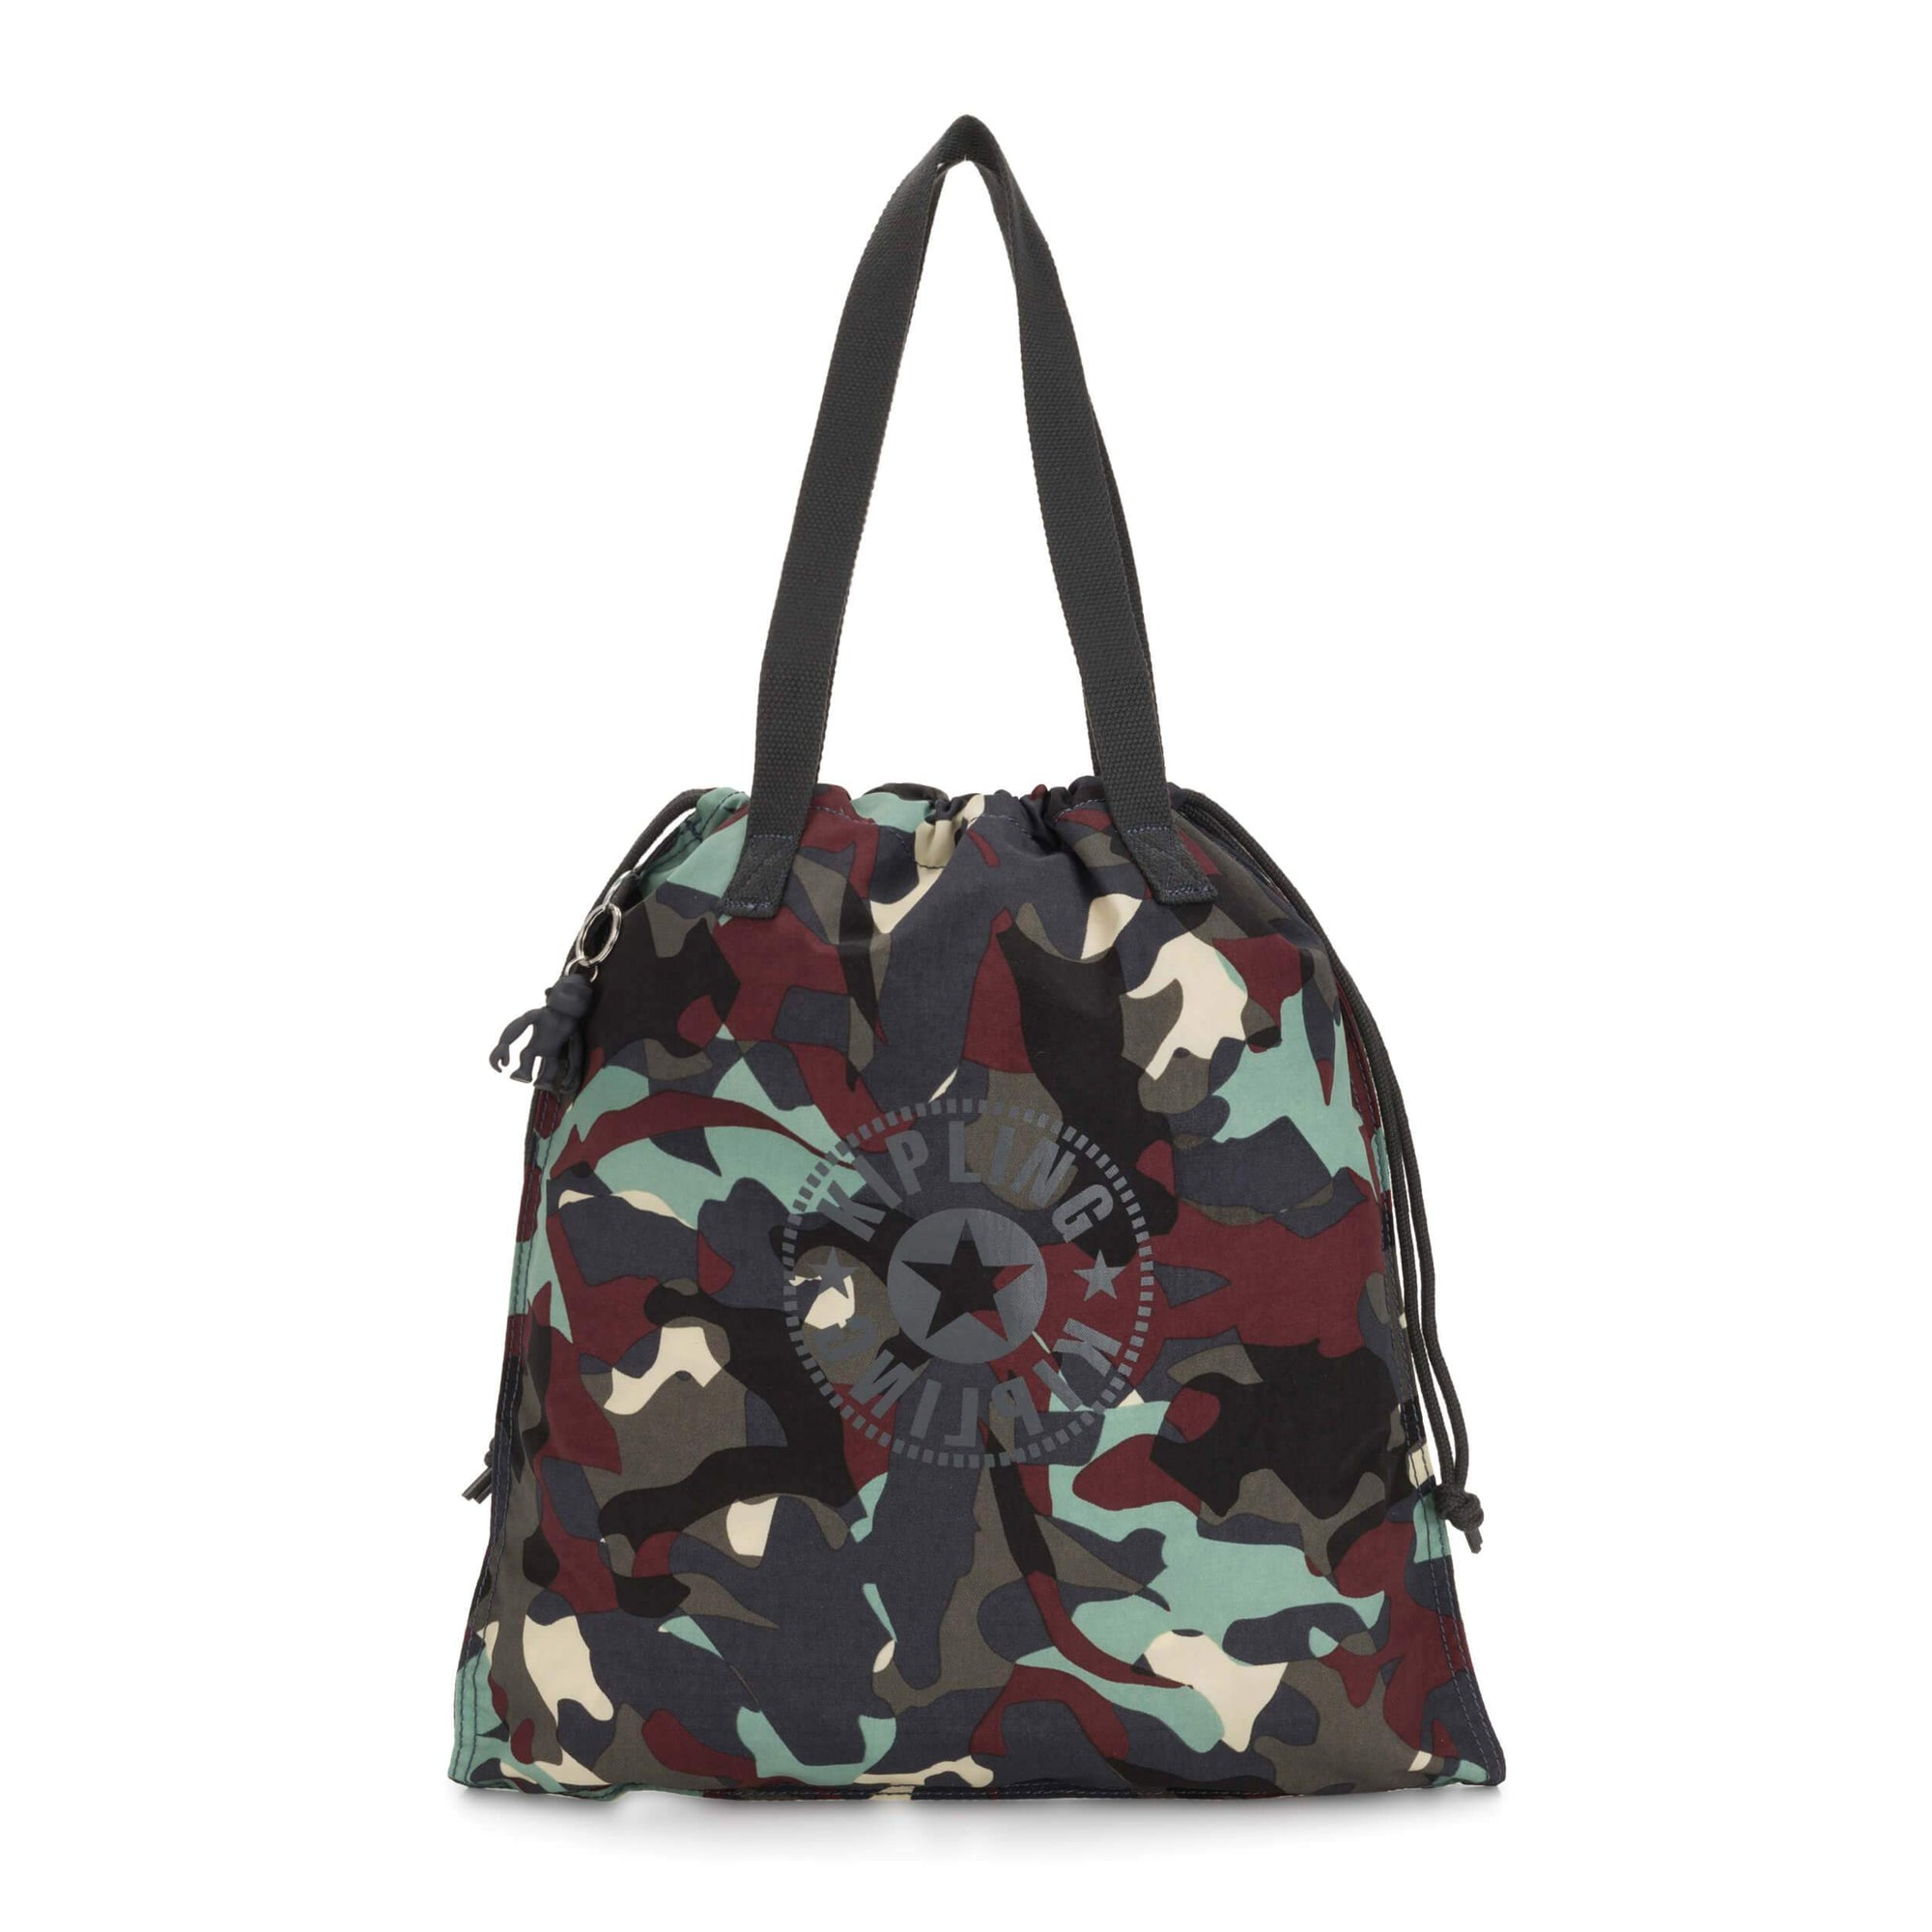 Bolsa Kipling New Hiphurray Camo L